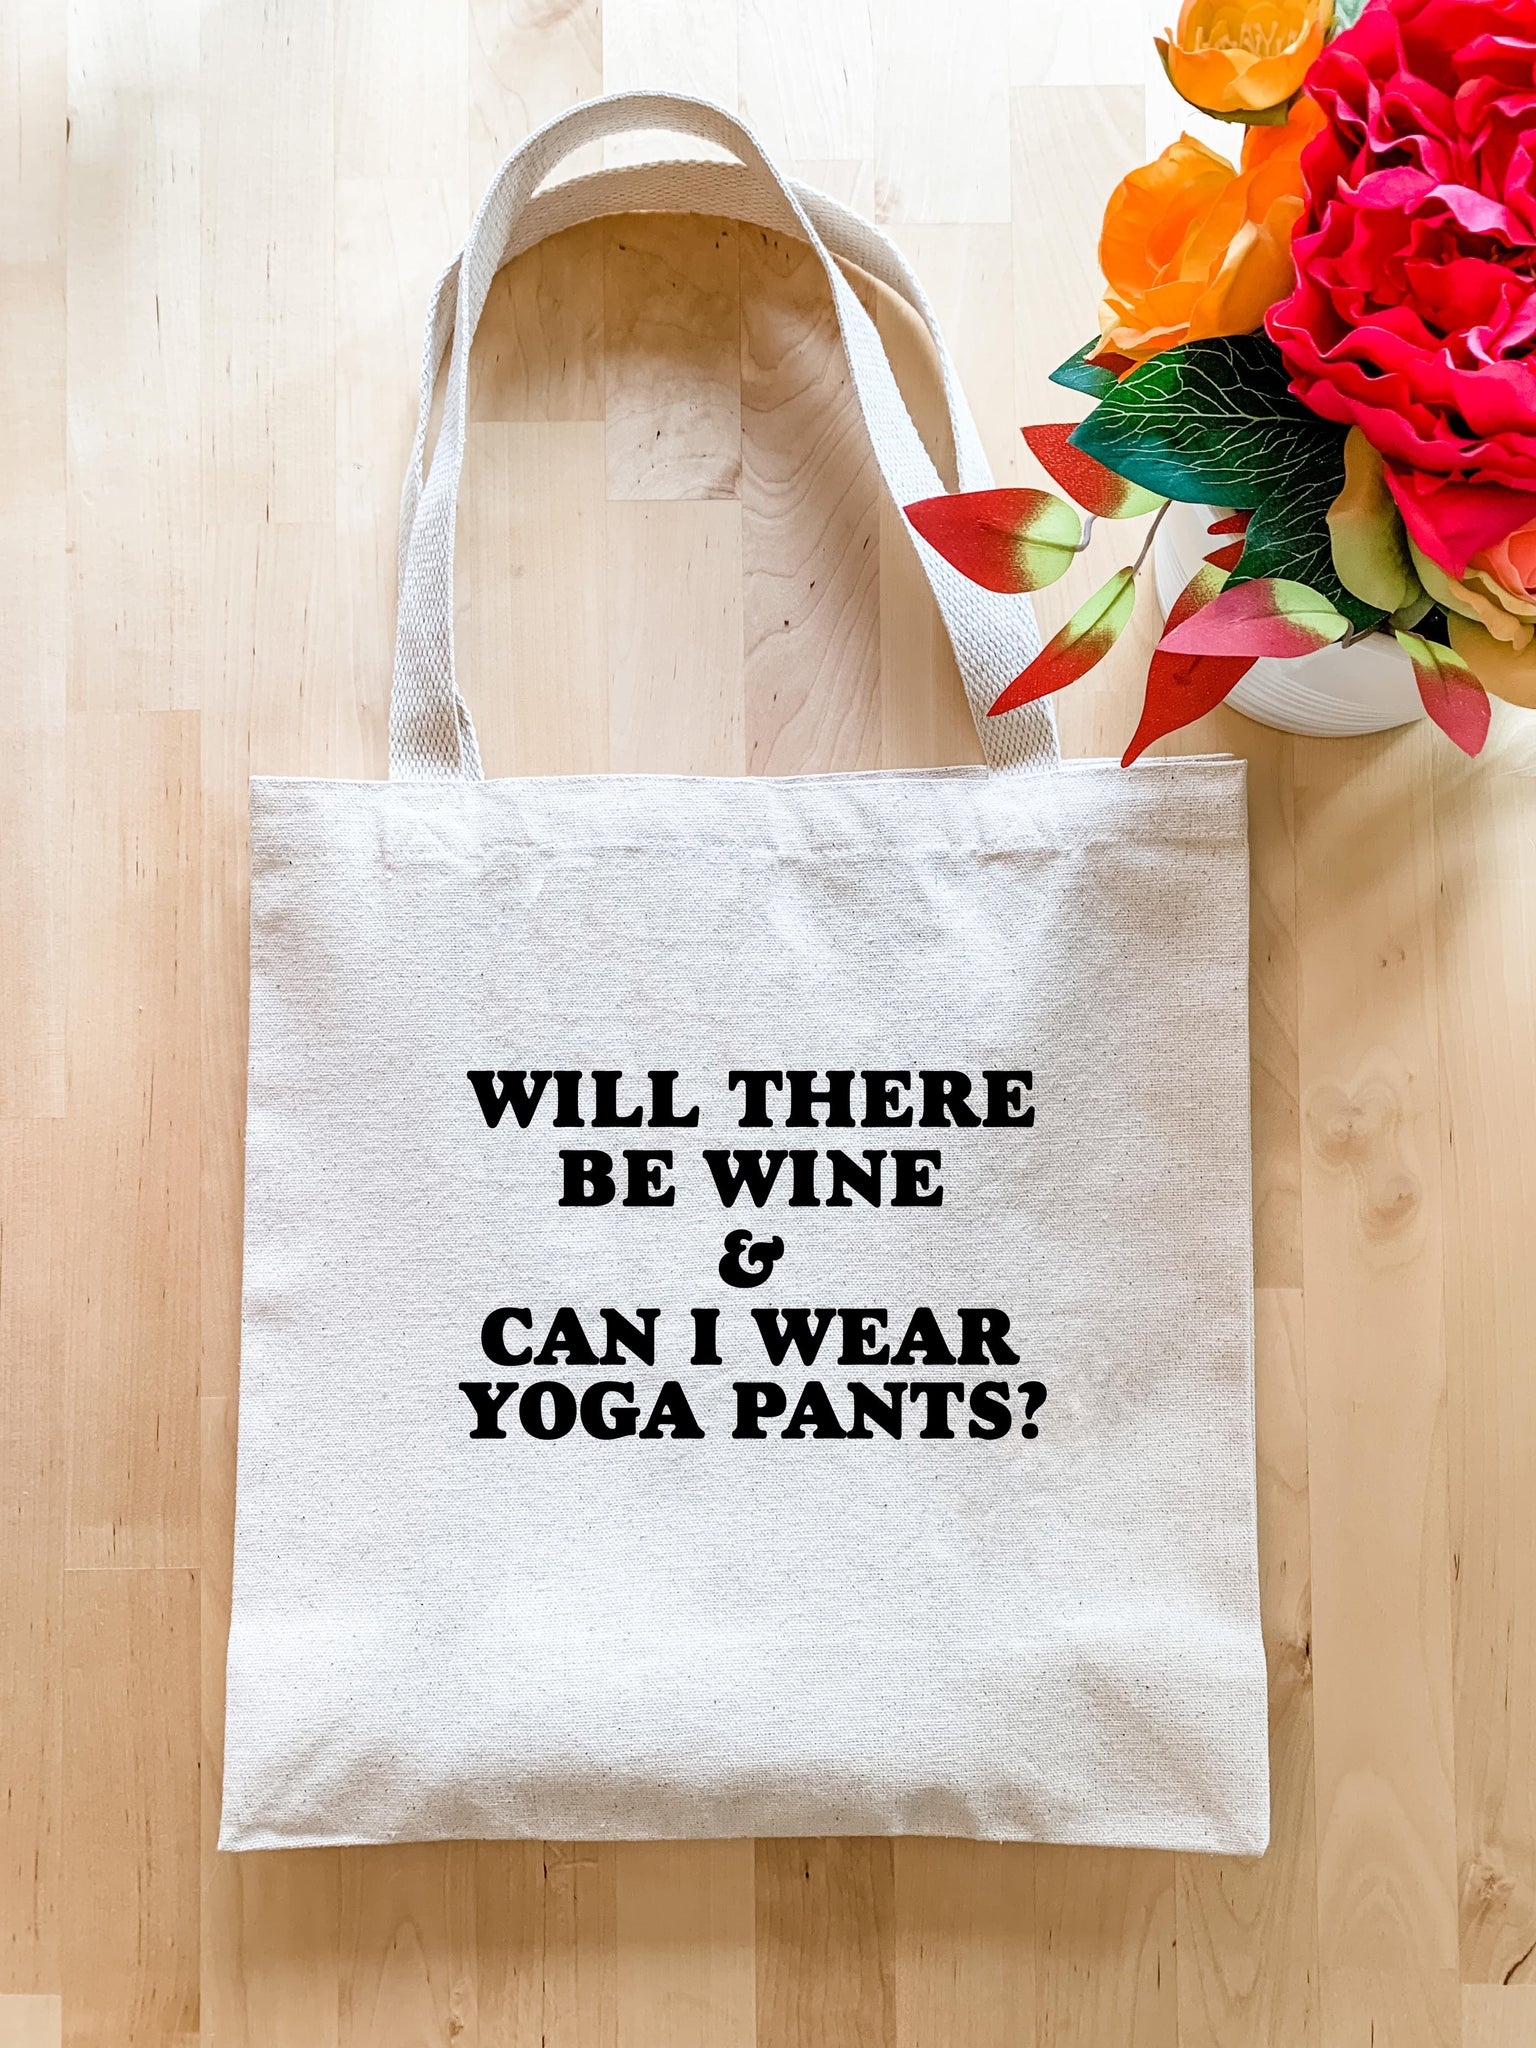 Will There Be Wine & Can I Wear Yoga Pants? - Tote Bag - MoonlightMakers